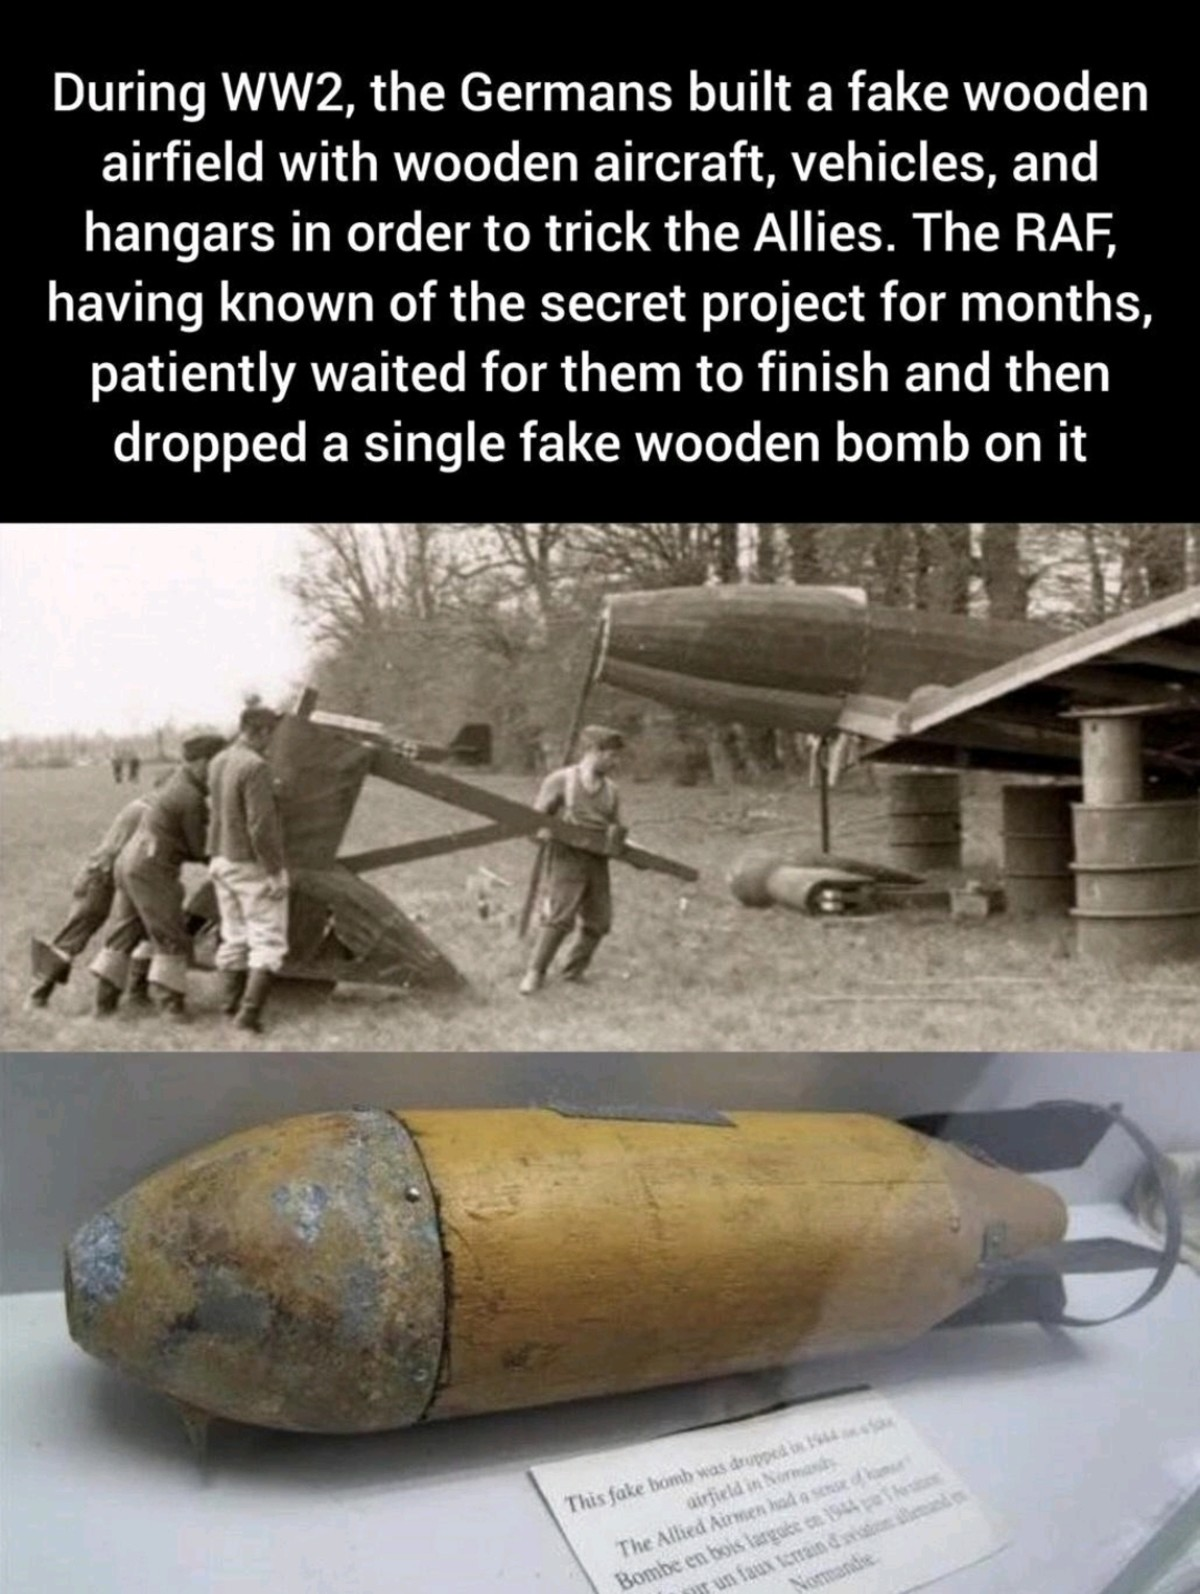 Wartime Fun. .. Even in war when resources are limited there's time for a quick gag